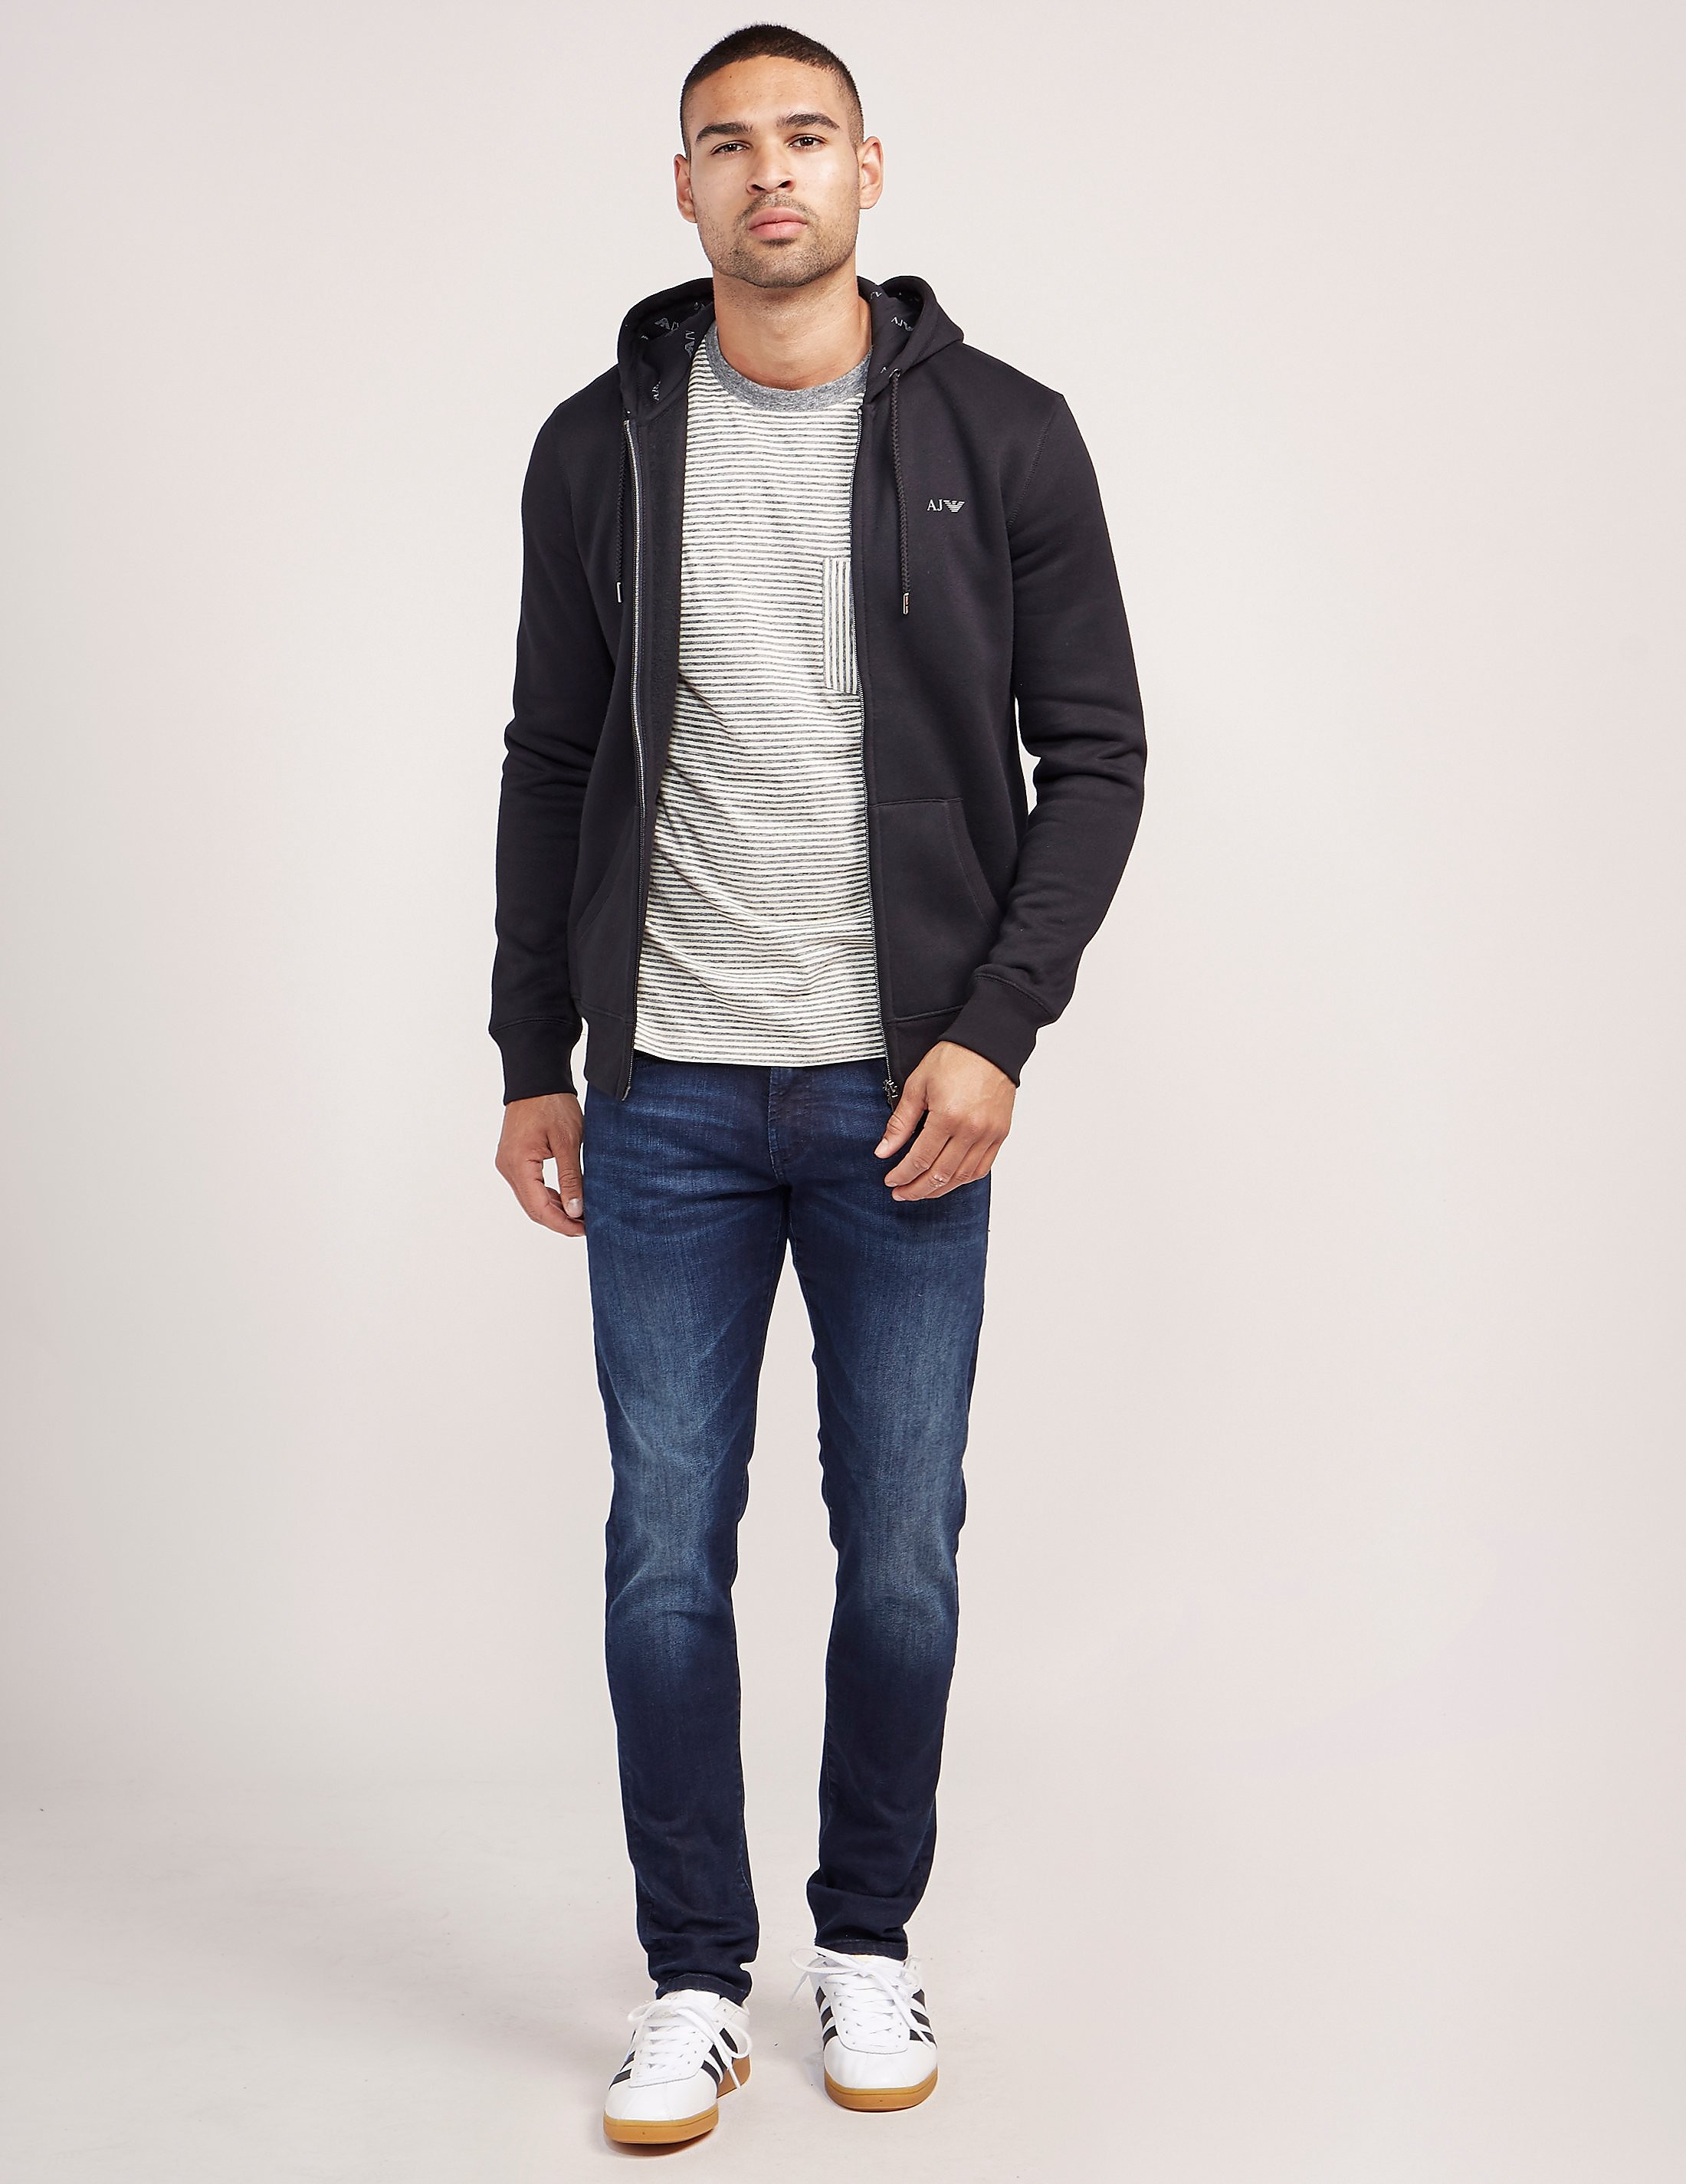 Armani Jeans RF Zip Up Track Top - Exclusive